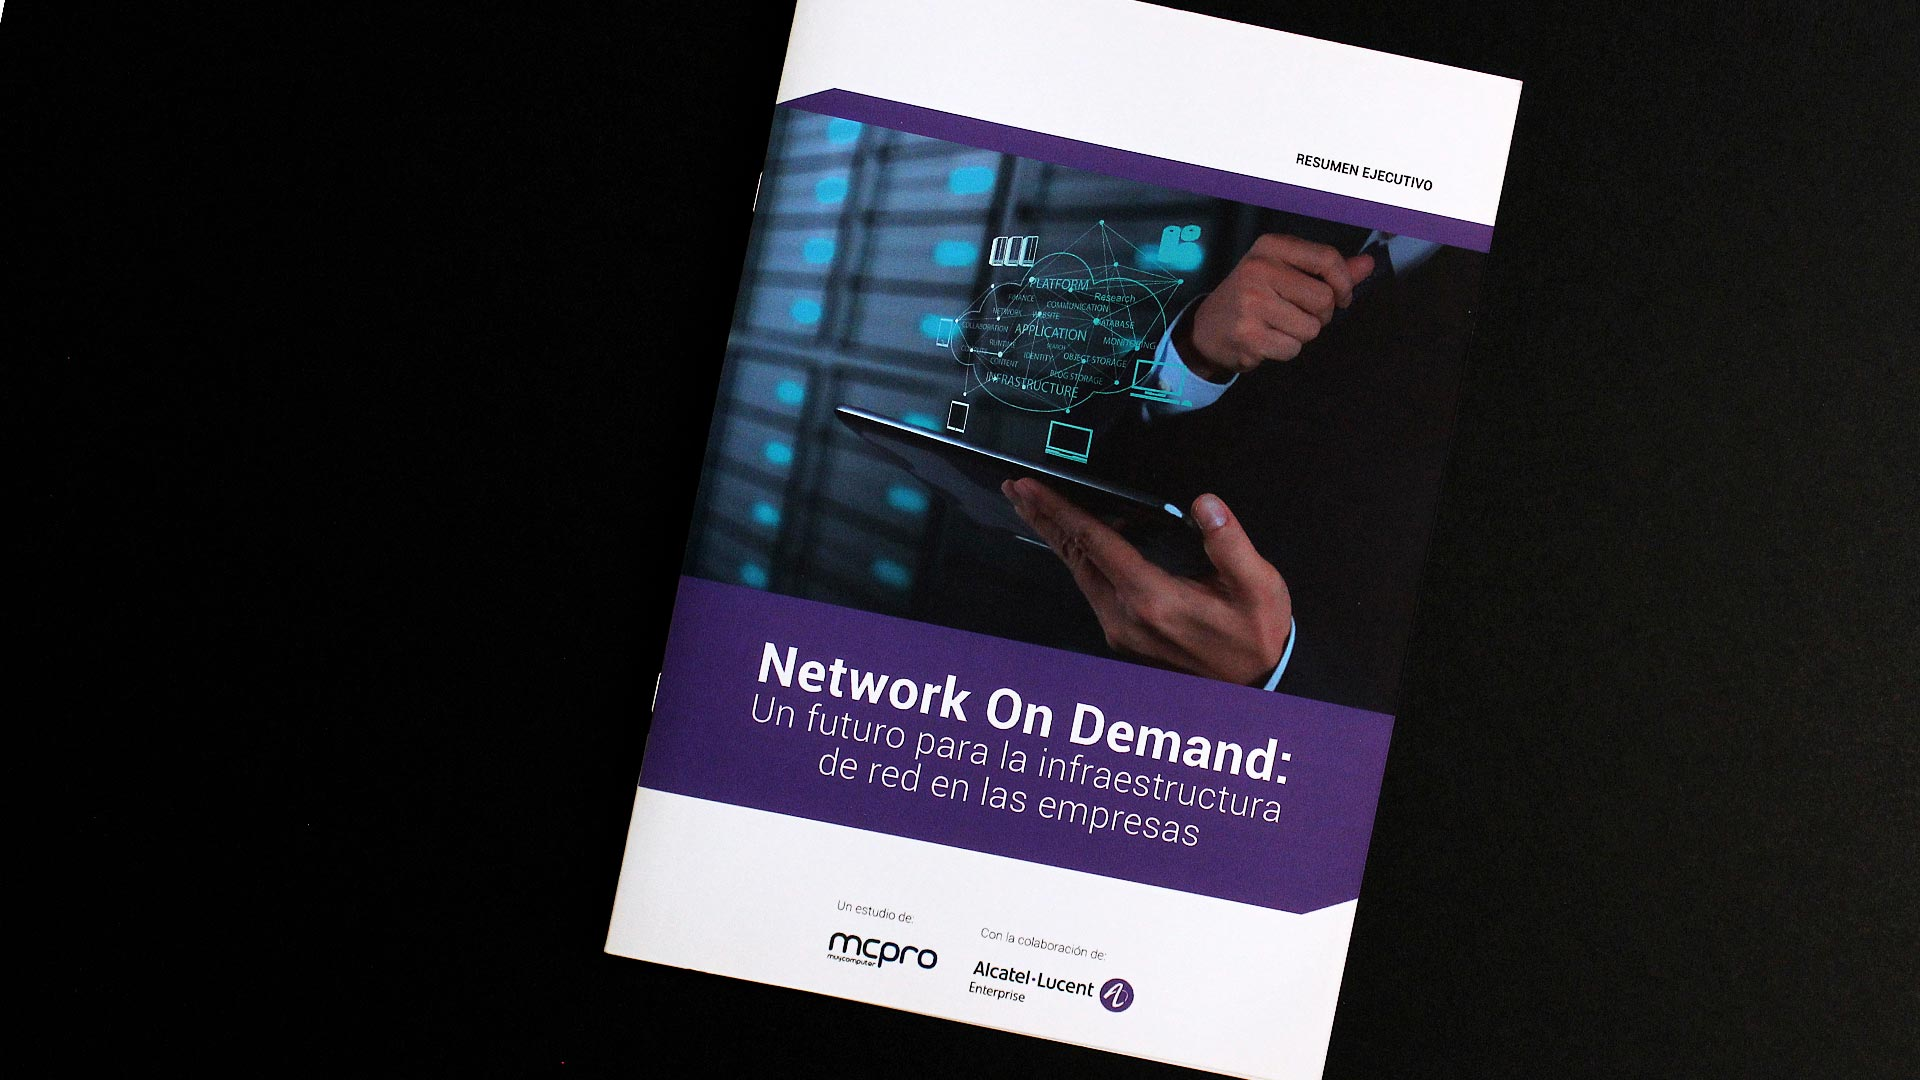 alcatel-content-marketing-informe-resumen-ejecutivo-networkondemand-ebook-2016-01